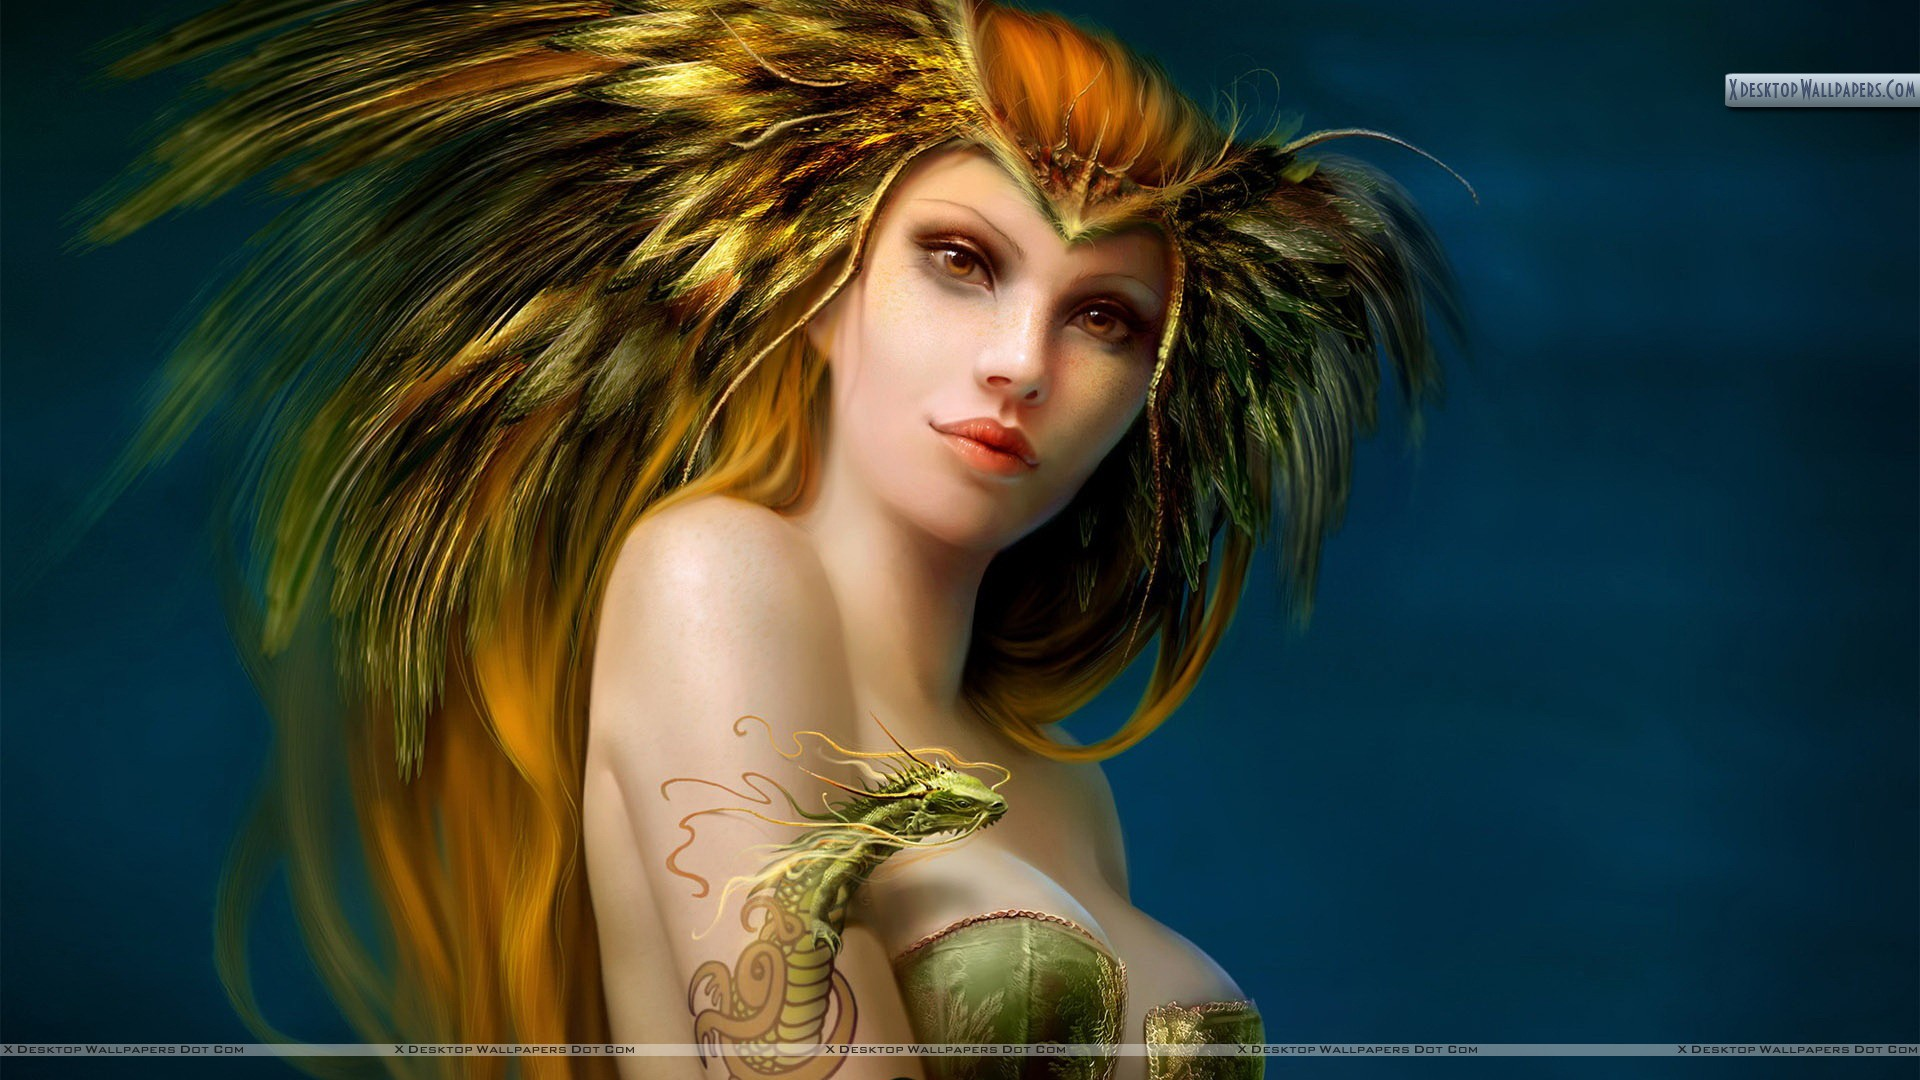 3d fantasy woman wallpaper you are viewing wallpaper titled 3d fantasy woman voltagebd Gallery